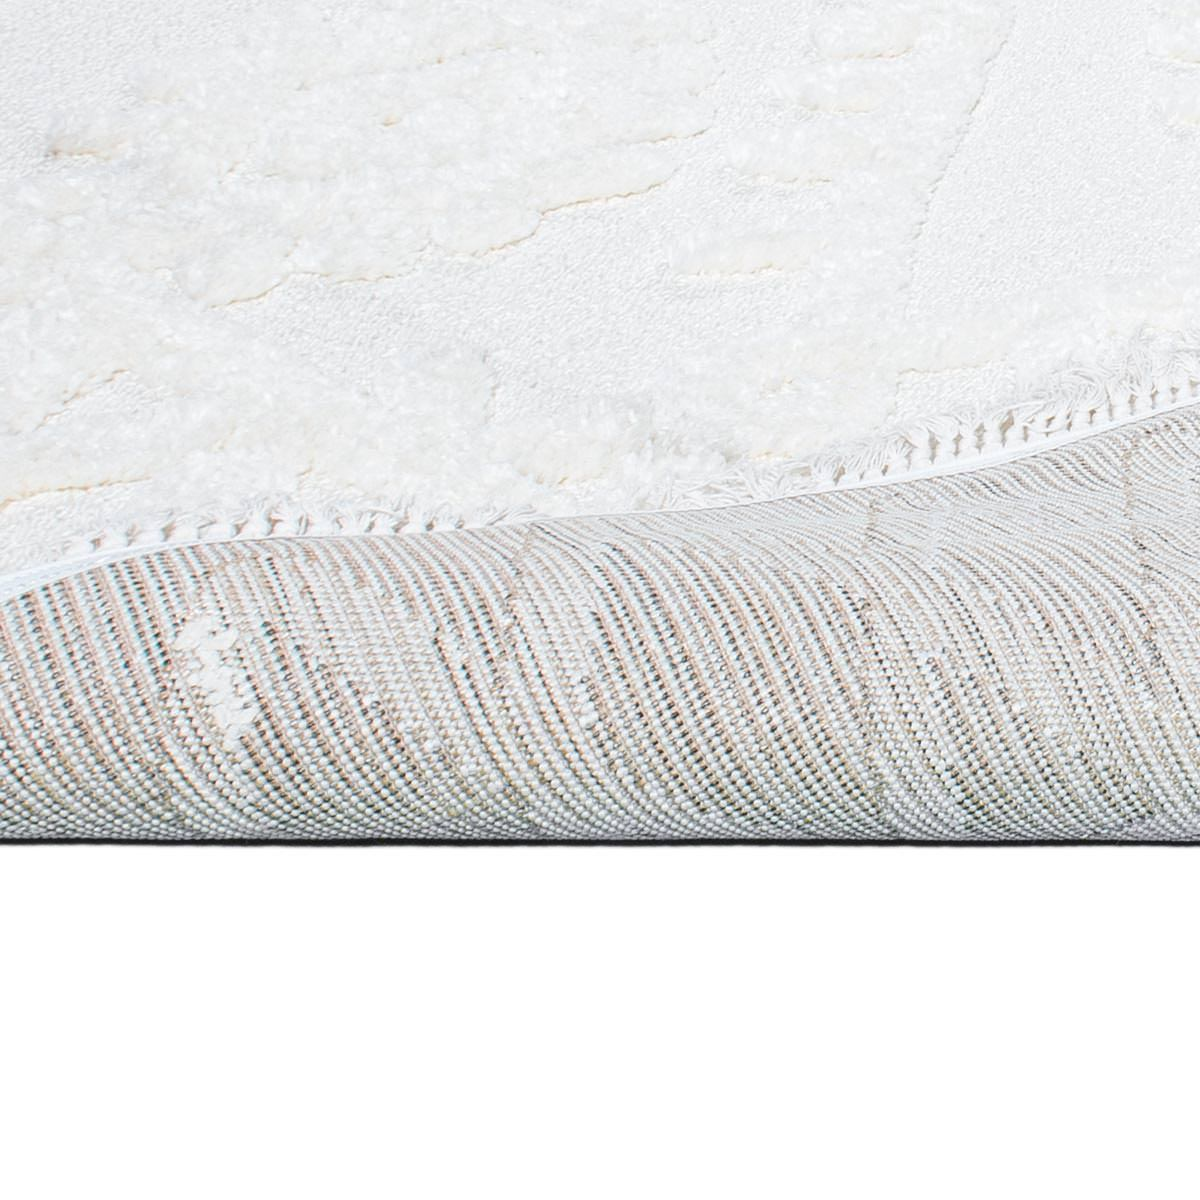 Atlas Rug 11 Cream - Fringes 5